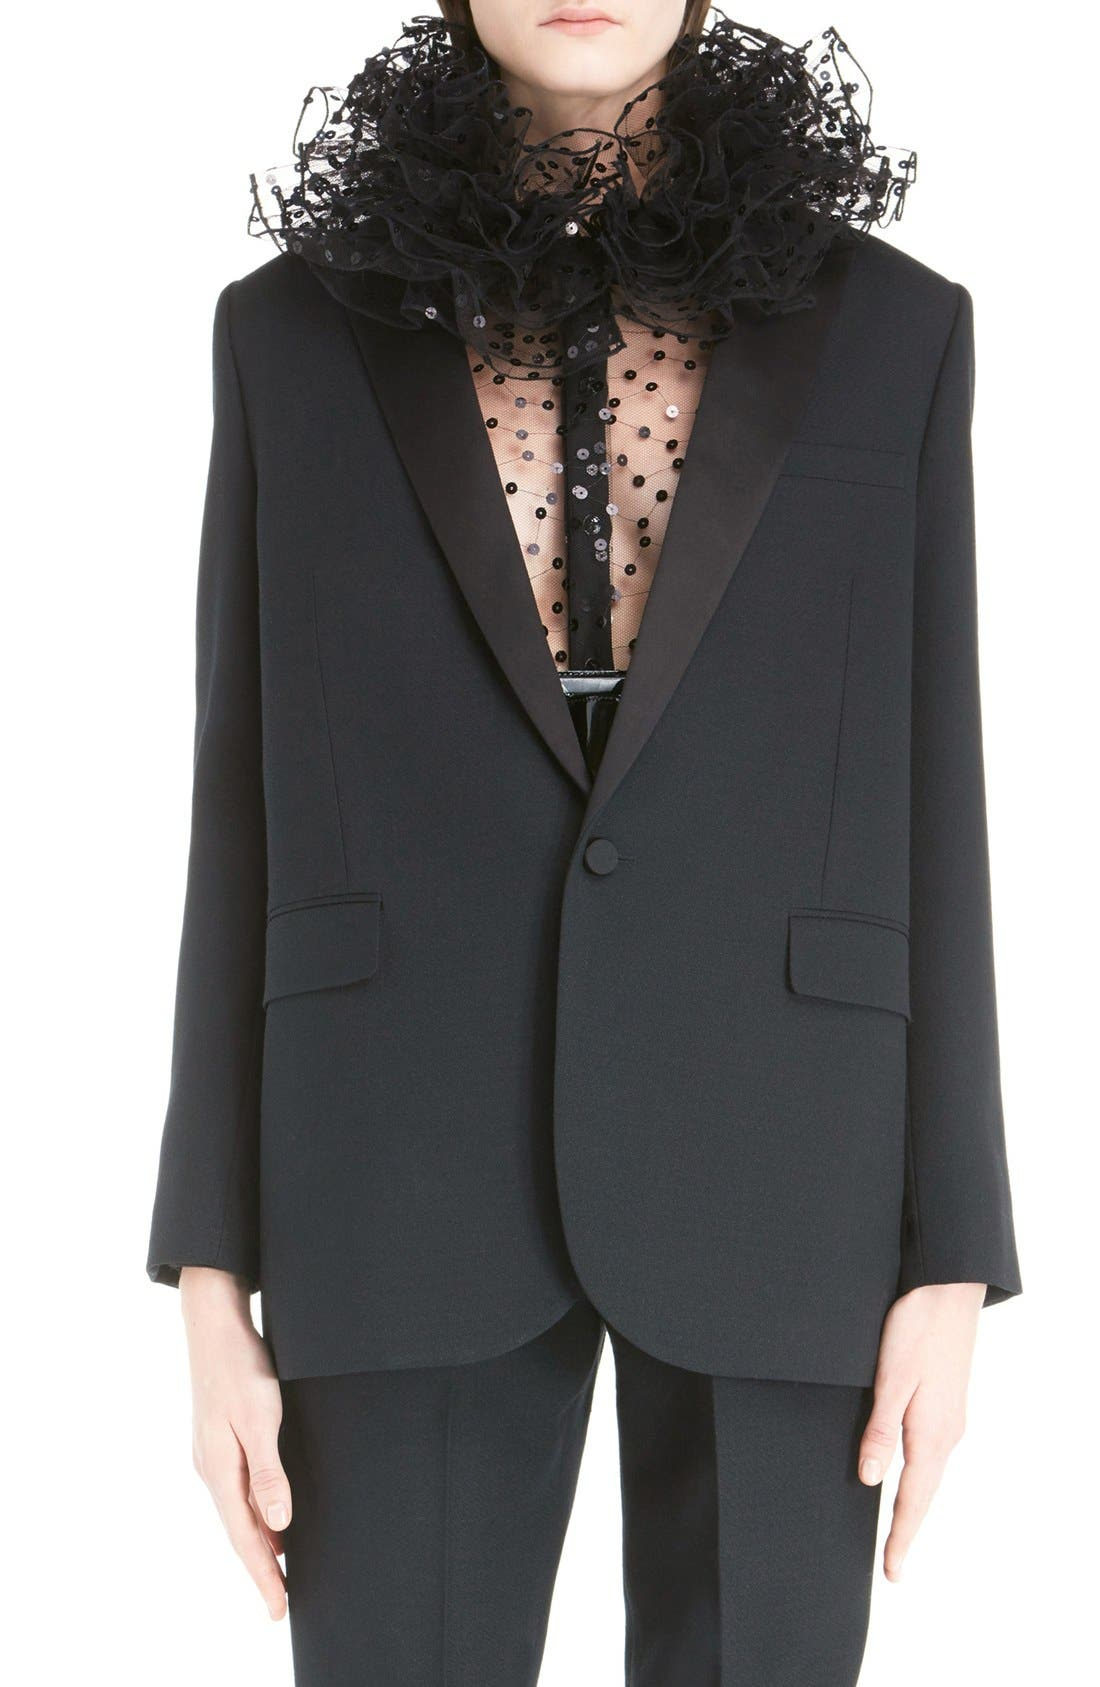 Main Image - Saint Laurent One-Button Tuxedo Jacket